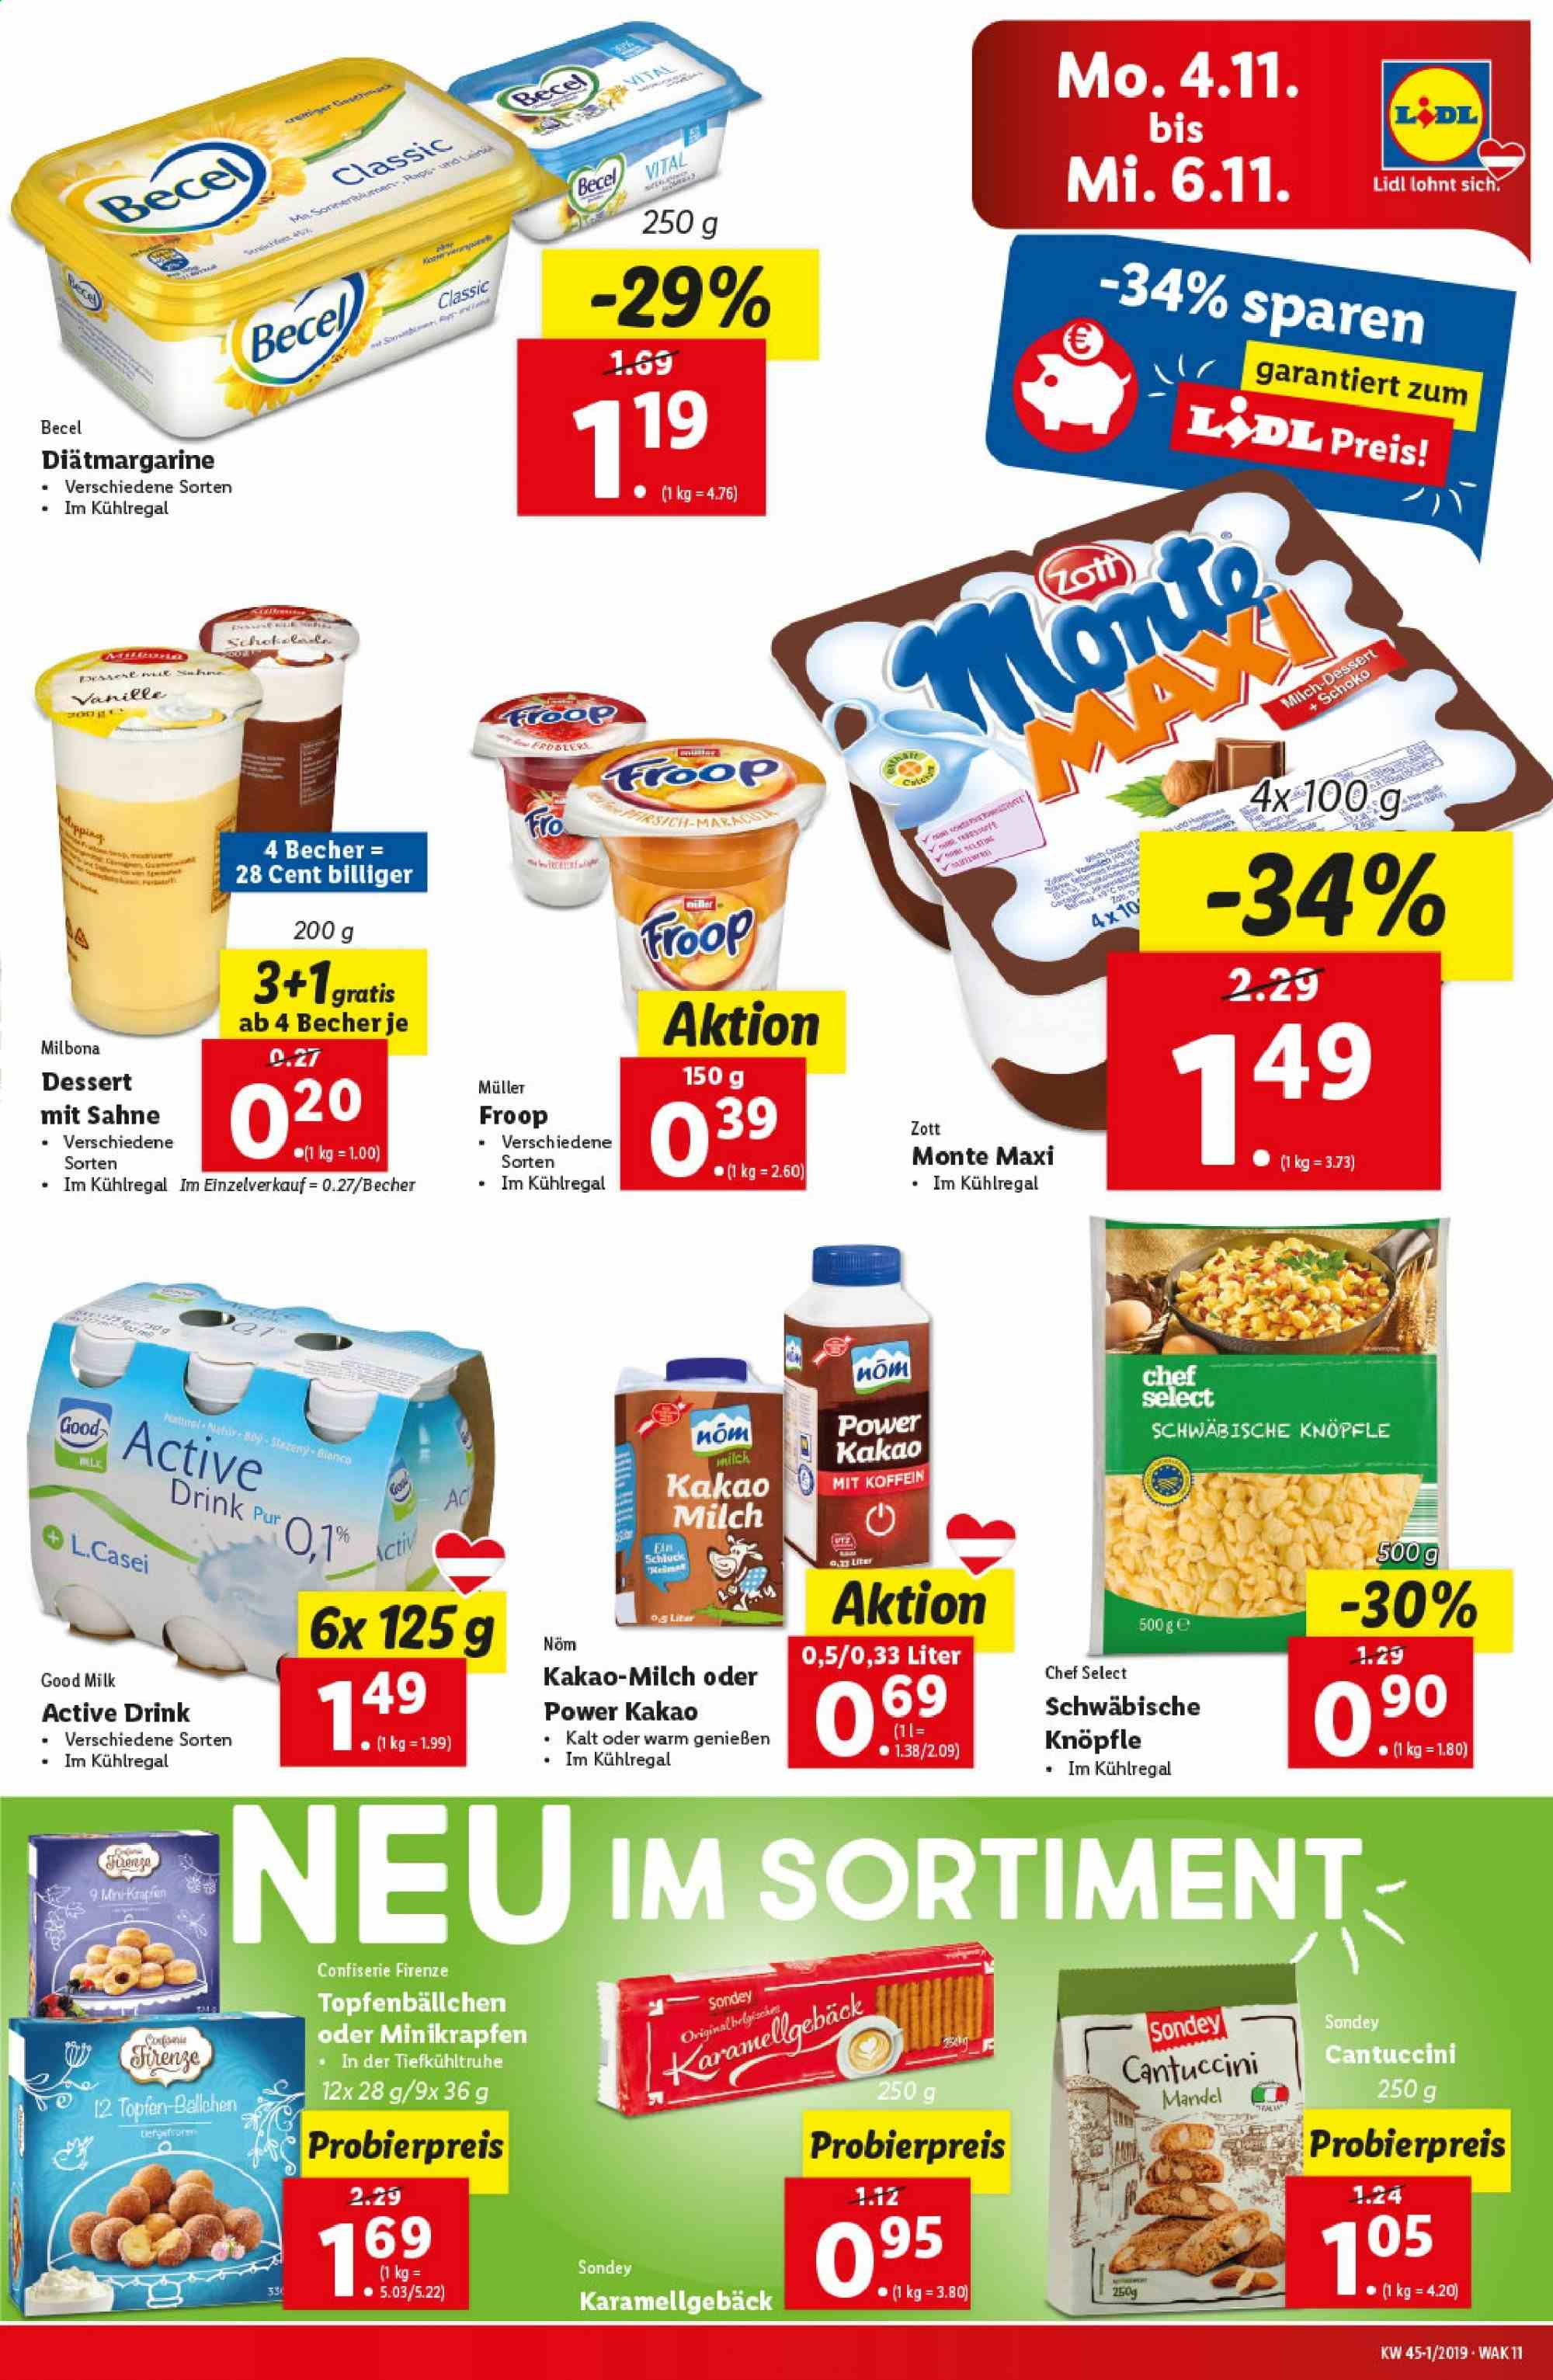 Angebote Lidl - 31.10.2019 - 6.11.2019. Seite 11.